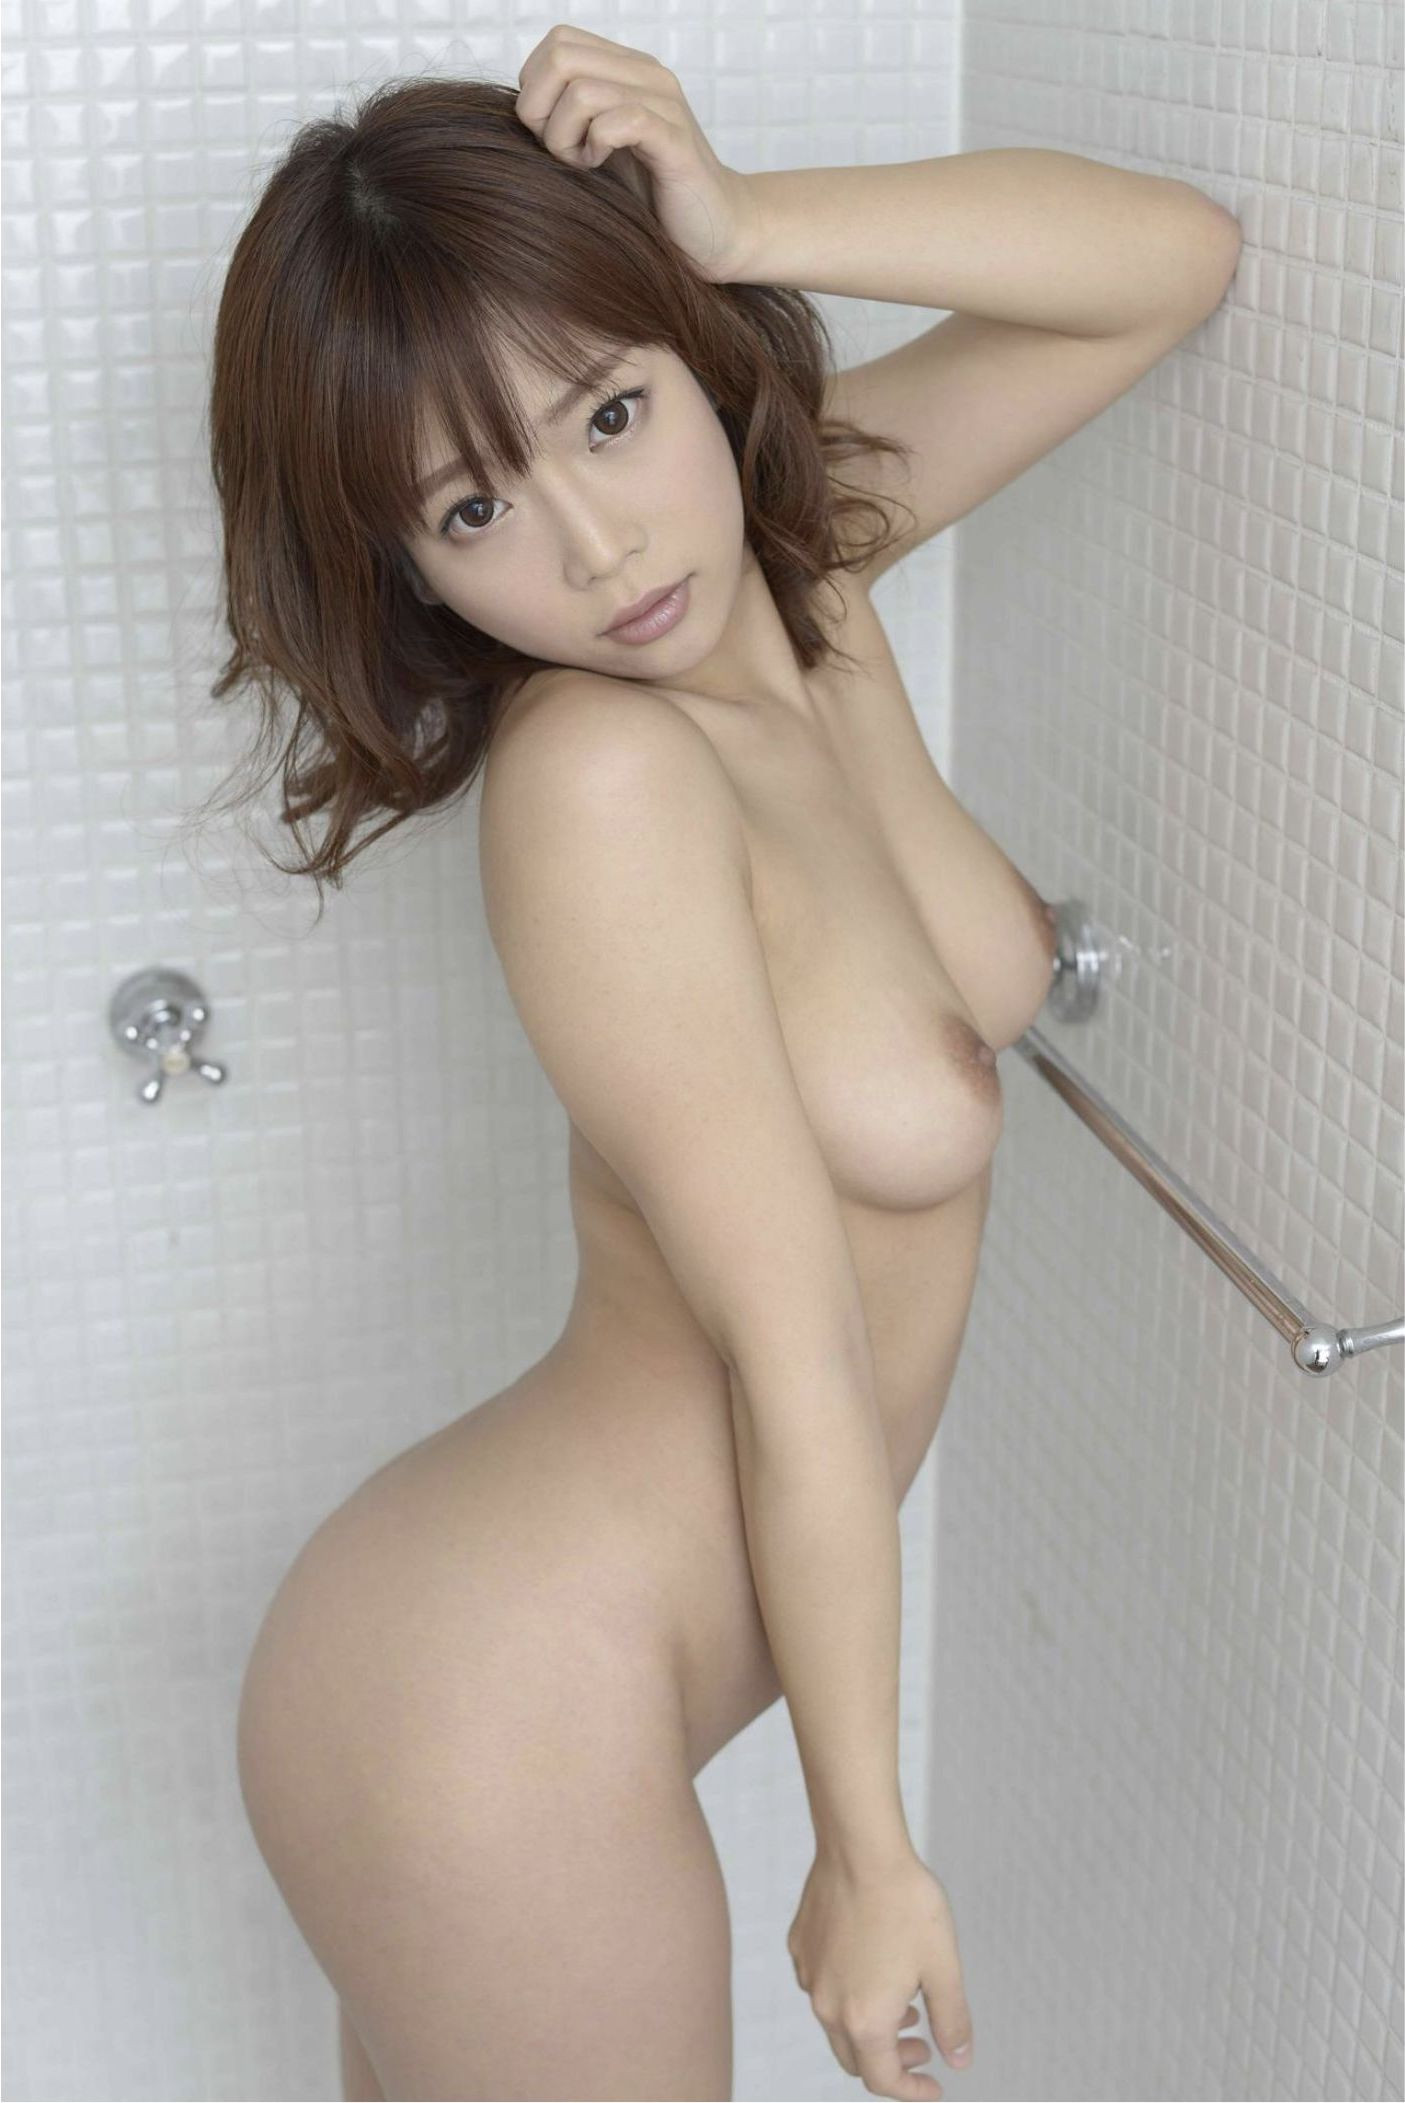 SOFT ON DEMAND GRAVURE COLLECTION 紗倉まな02 photo 067